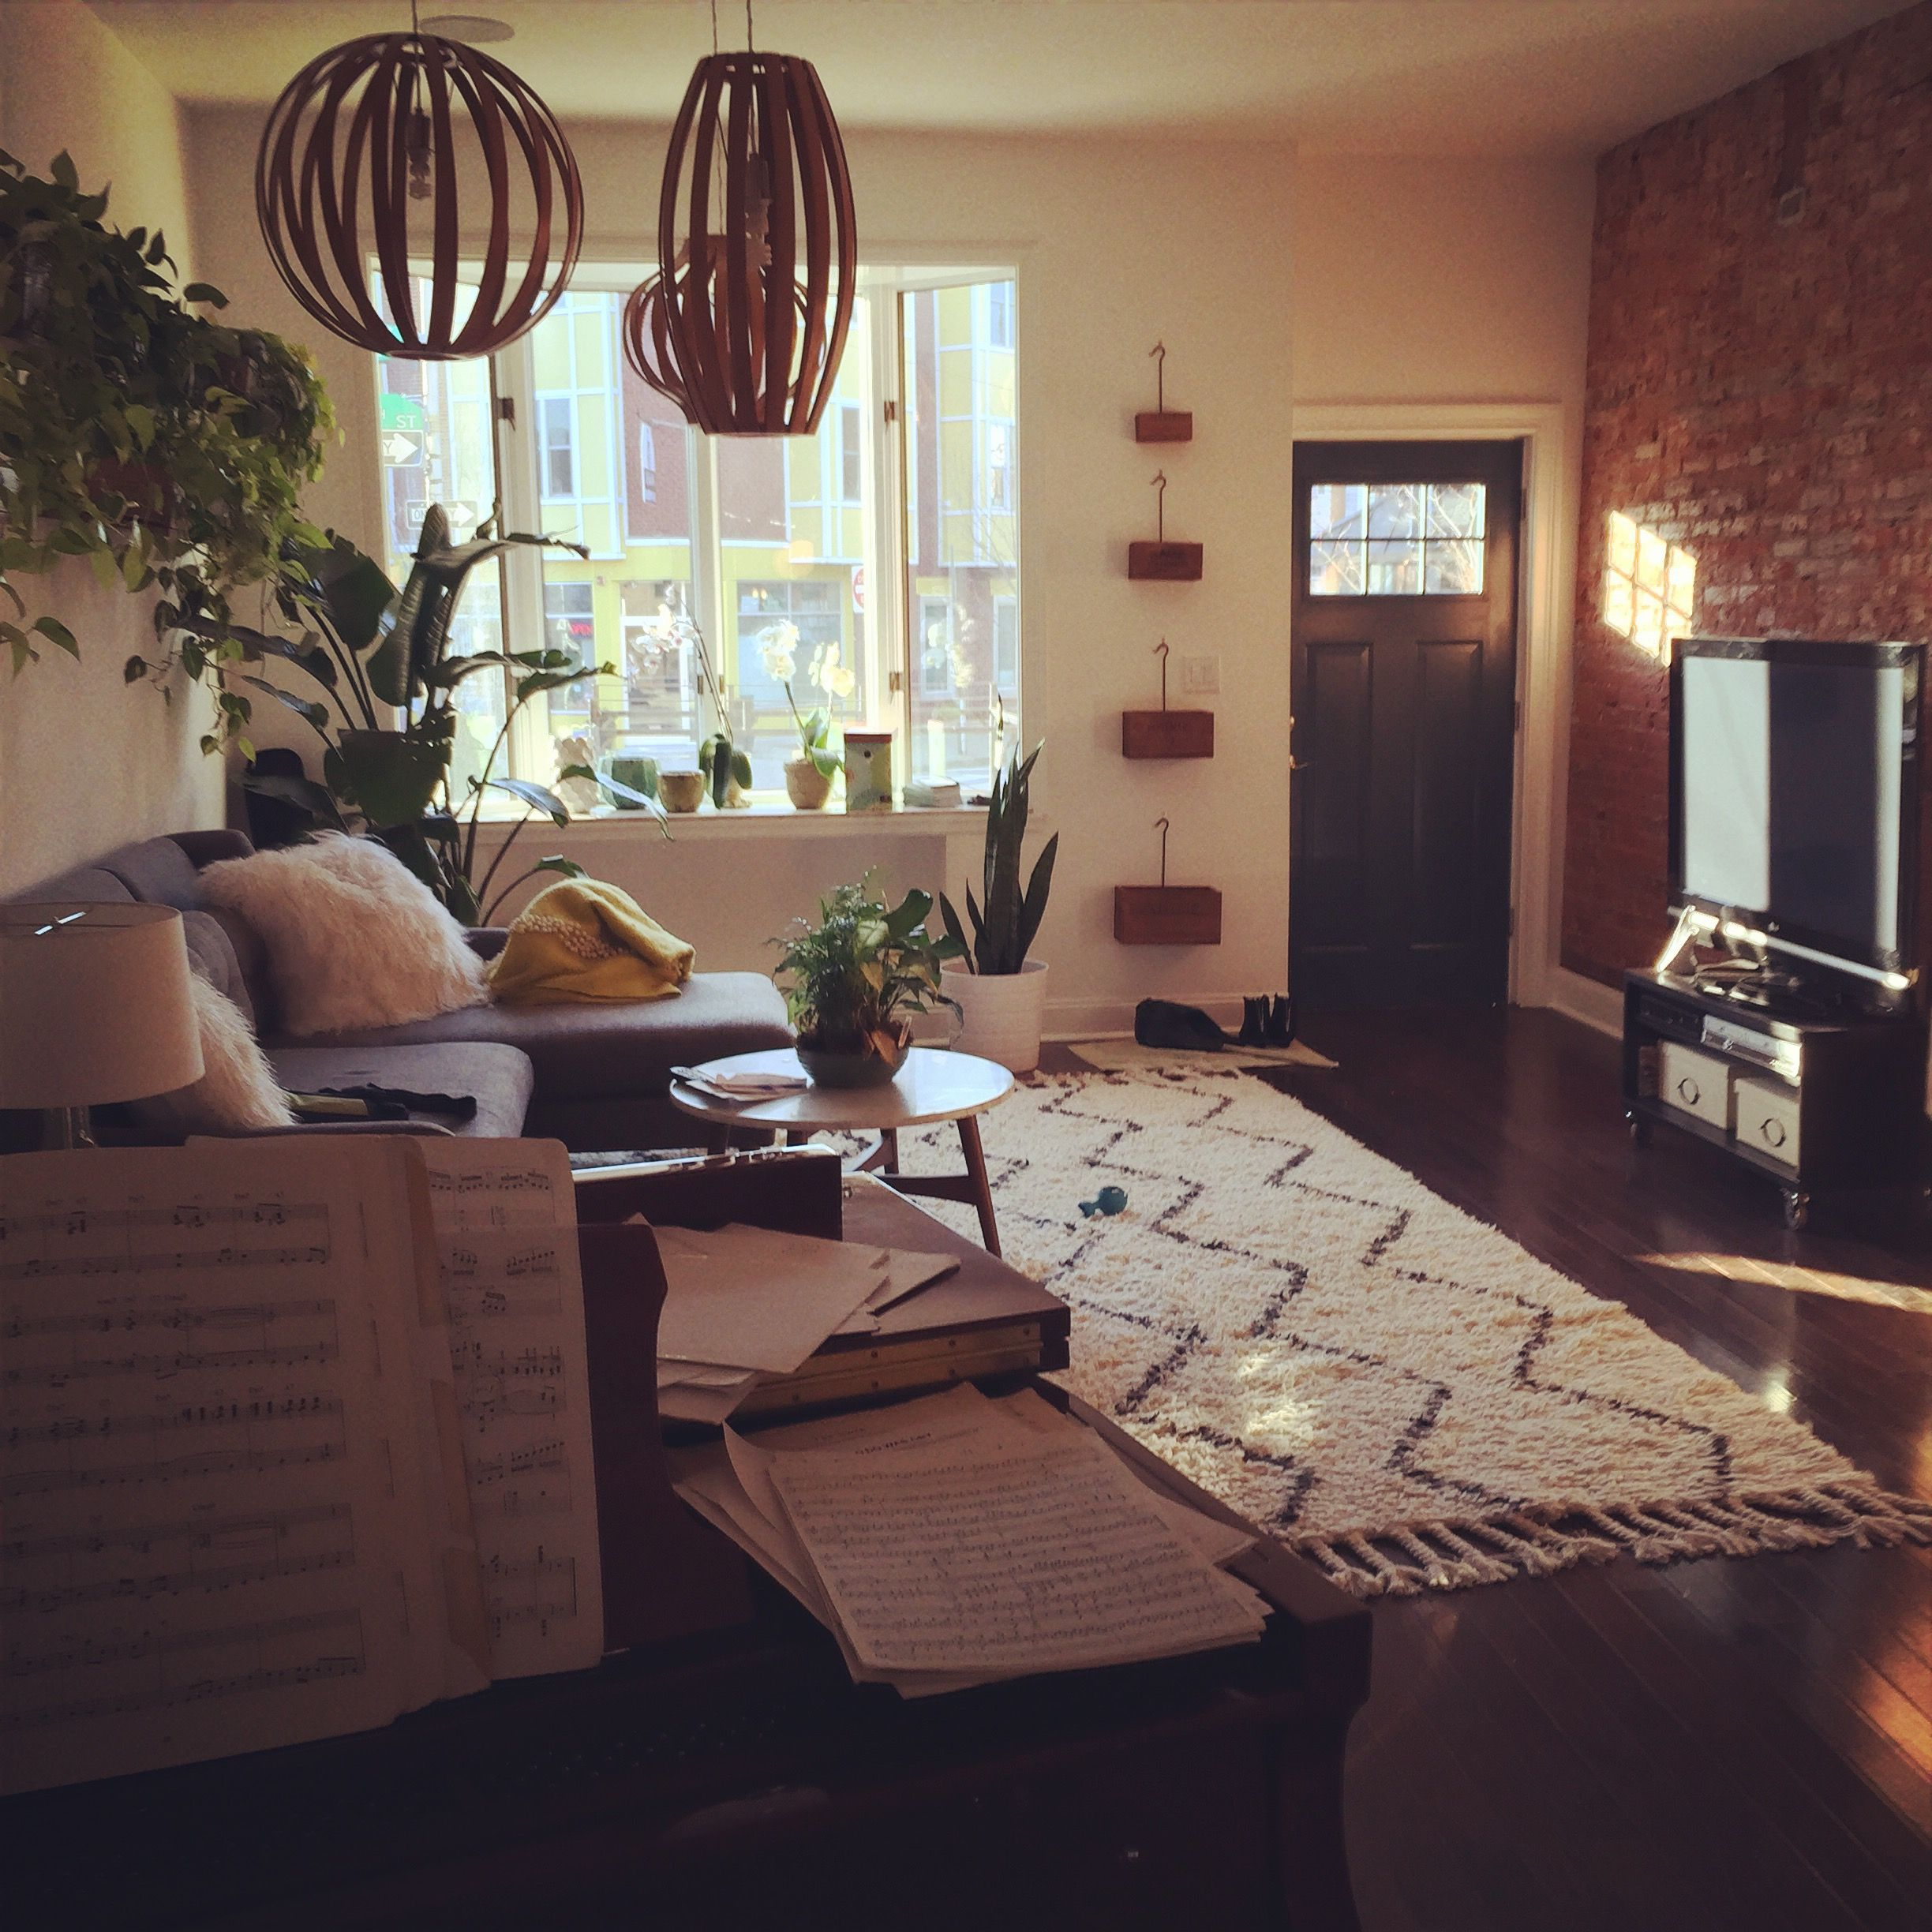 Pin by becky snowden on theme ideas pinterest living rooms room